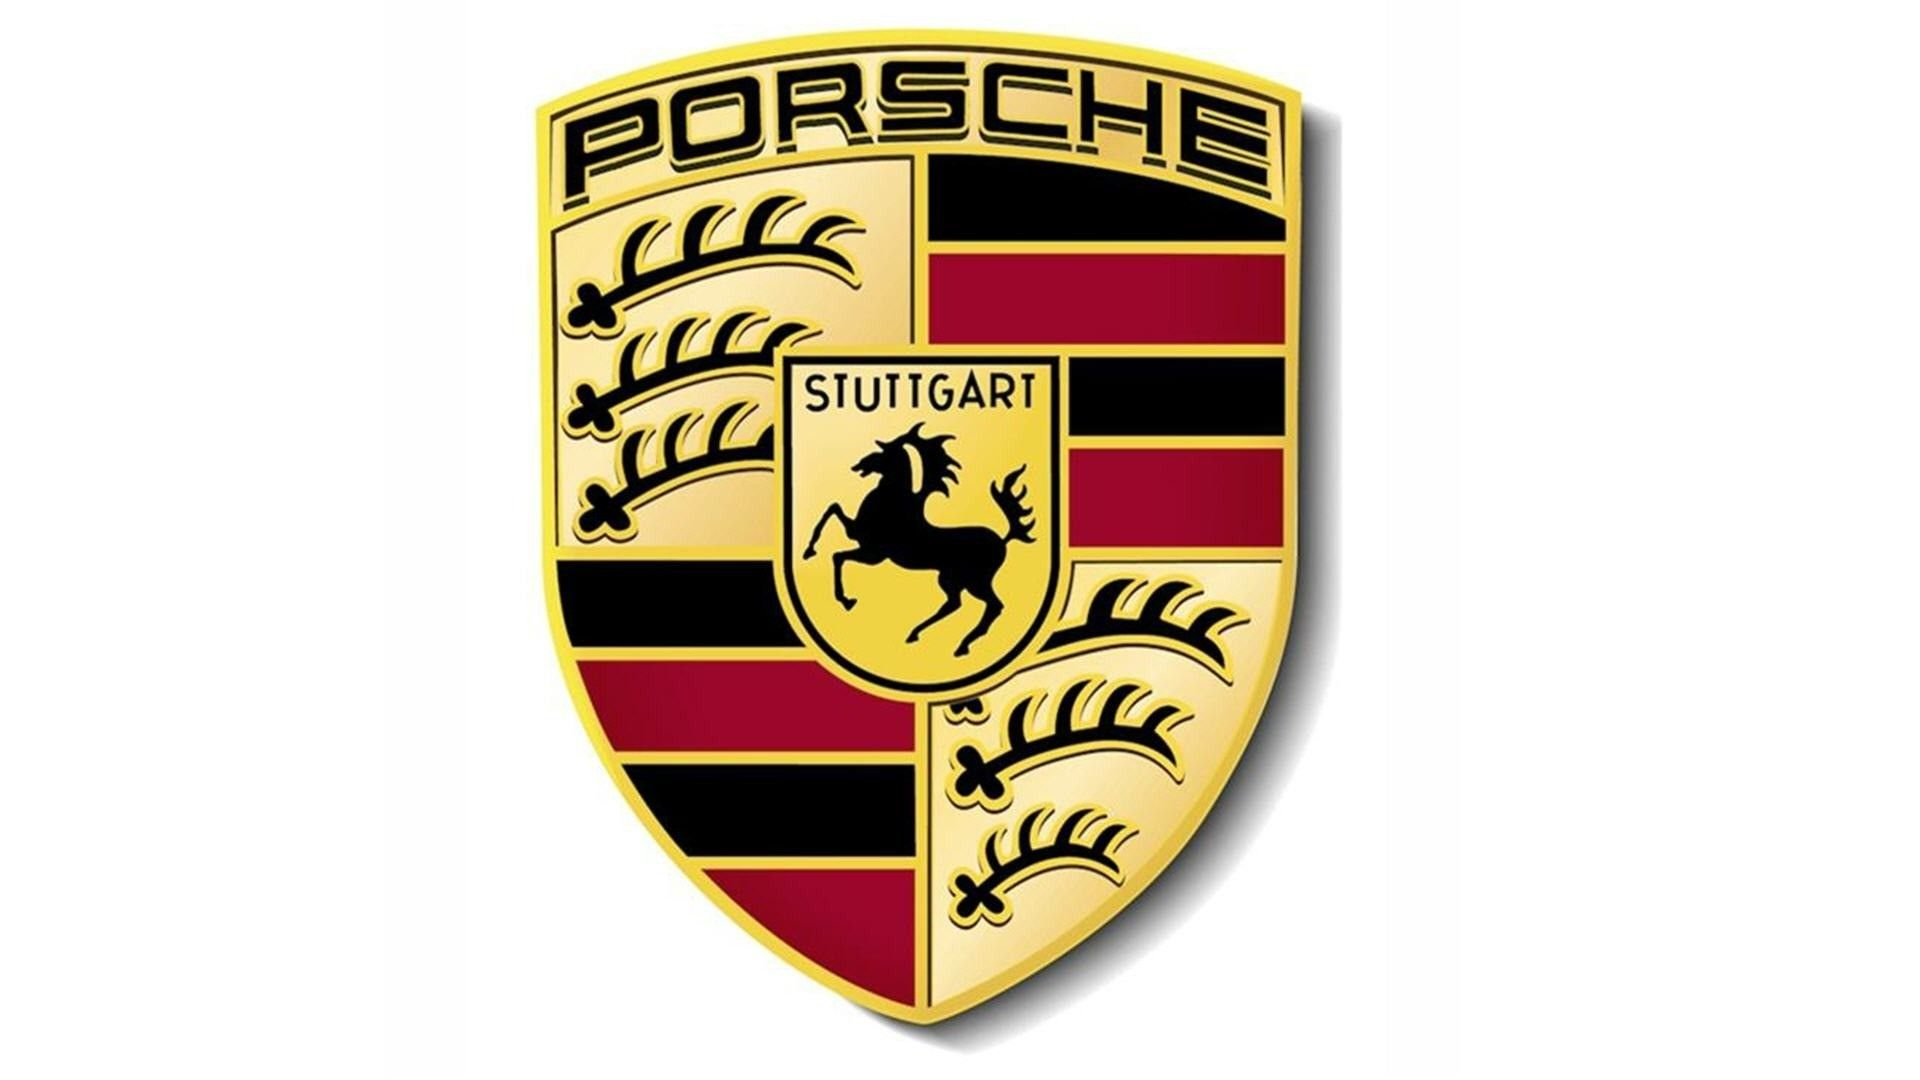 Porsche Logo Car Wallpapers Car Wallpapers Luxury Car Logos Car Logos Porsche Logo